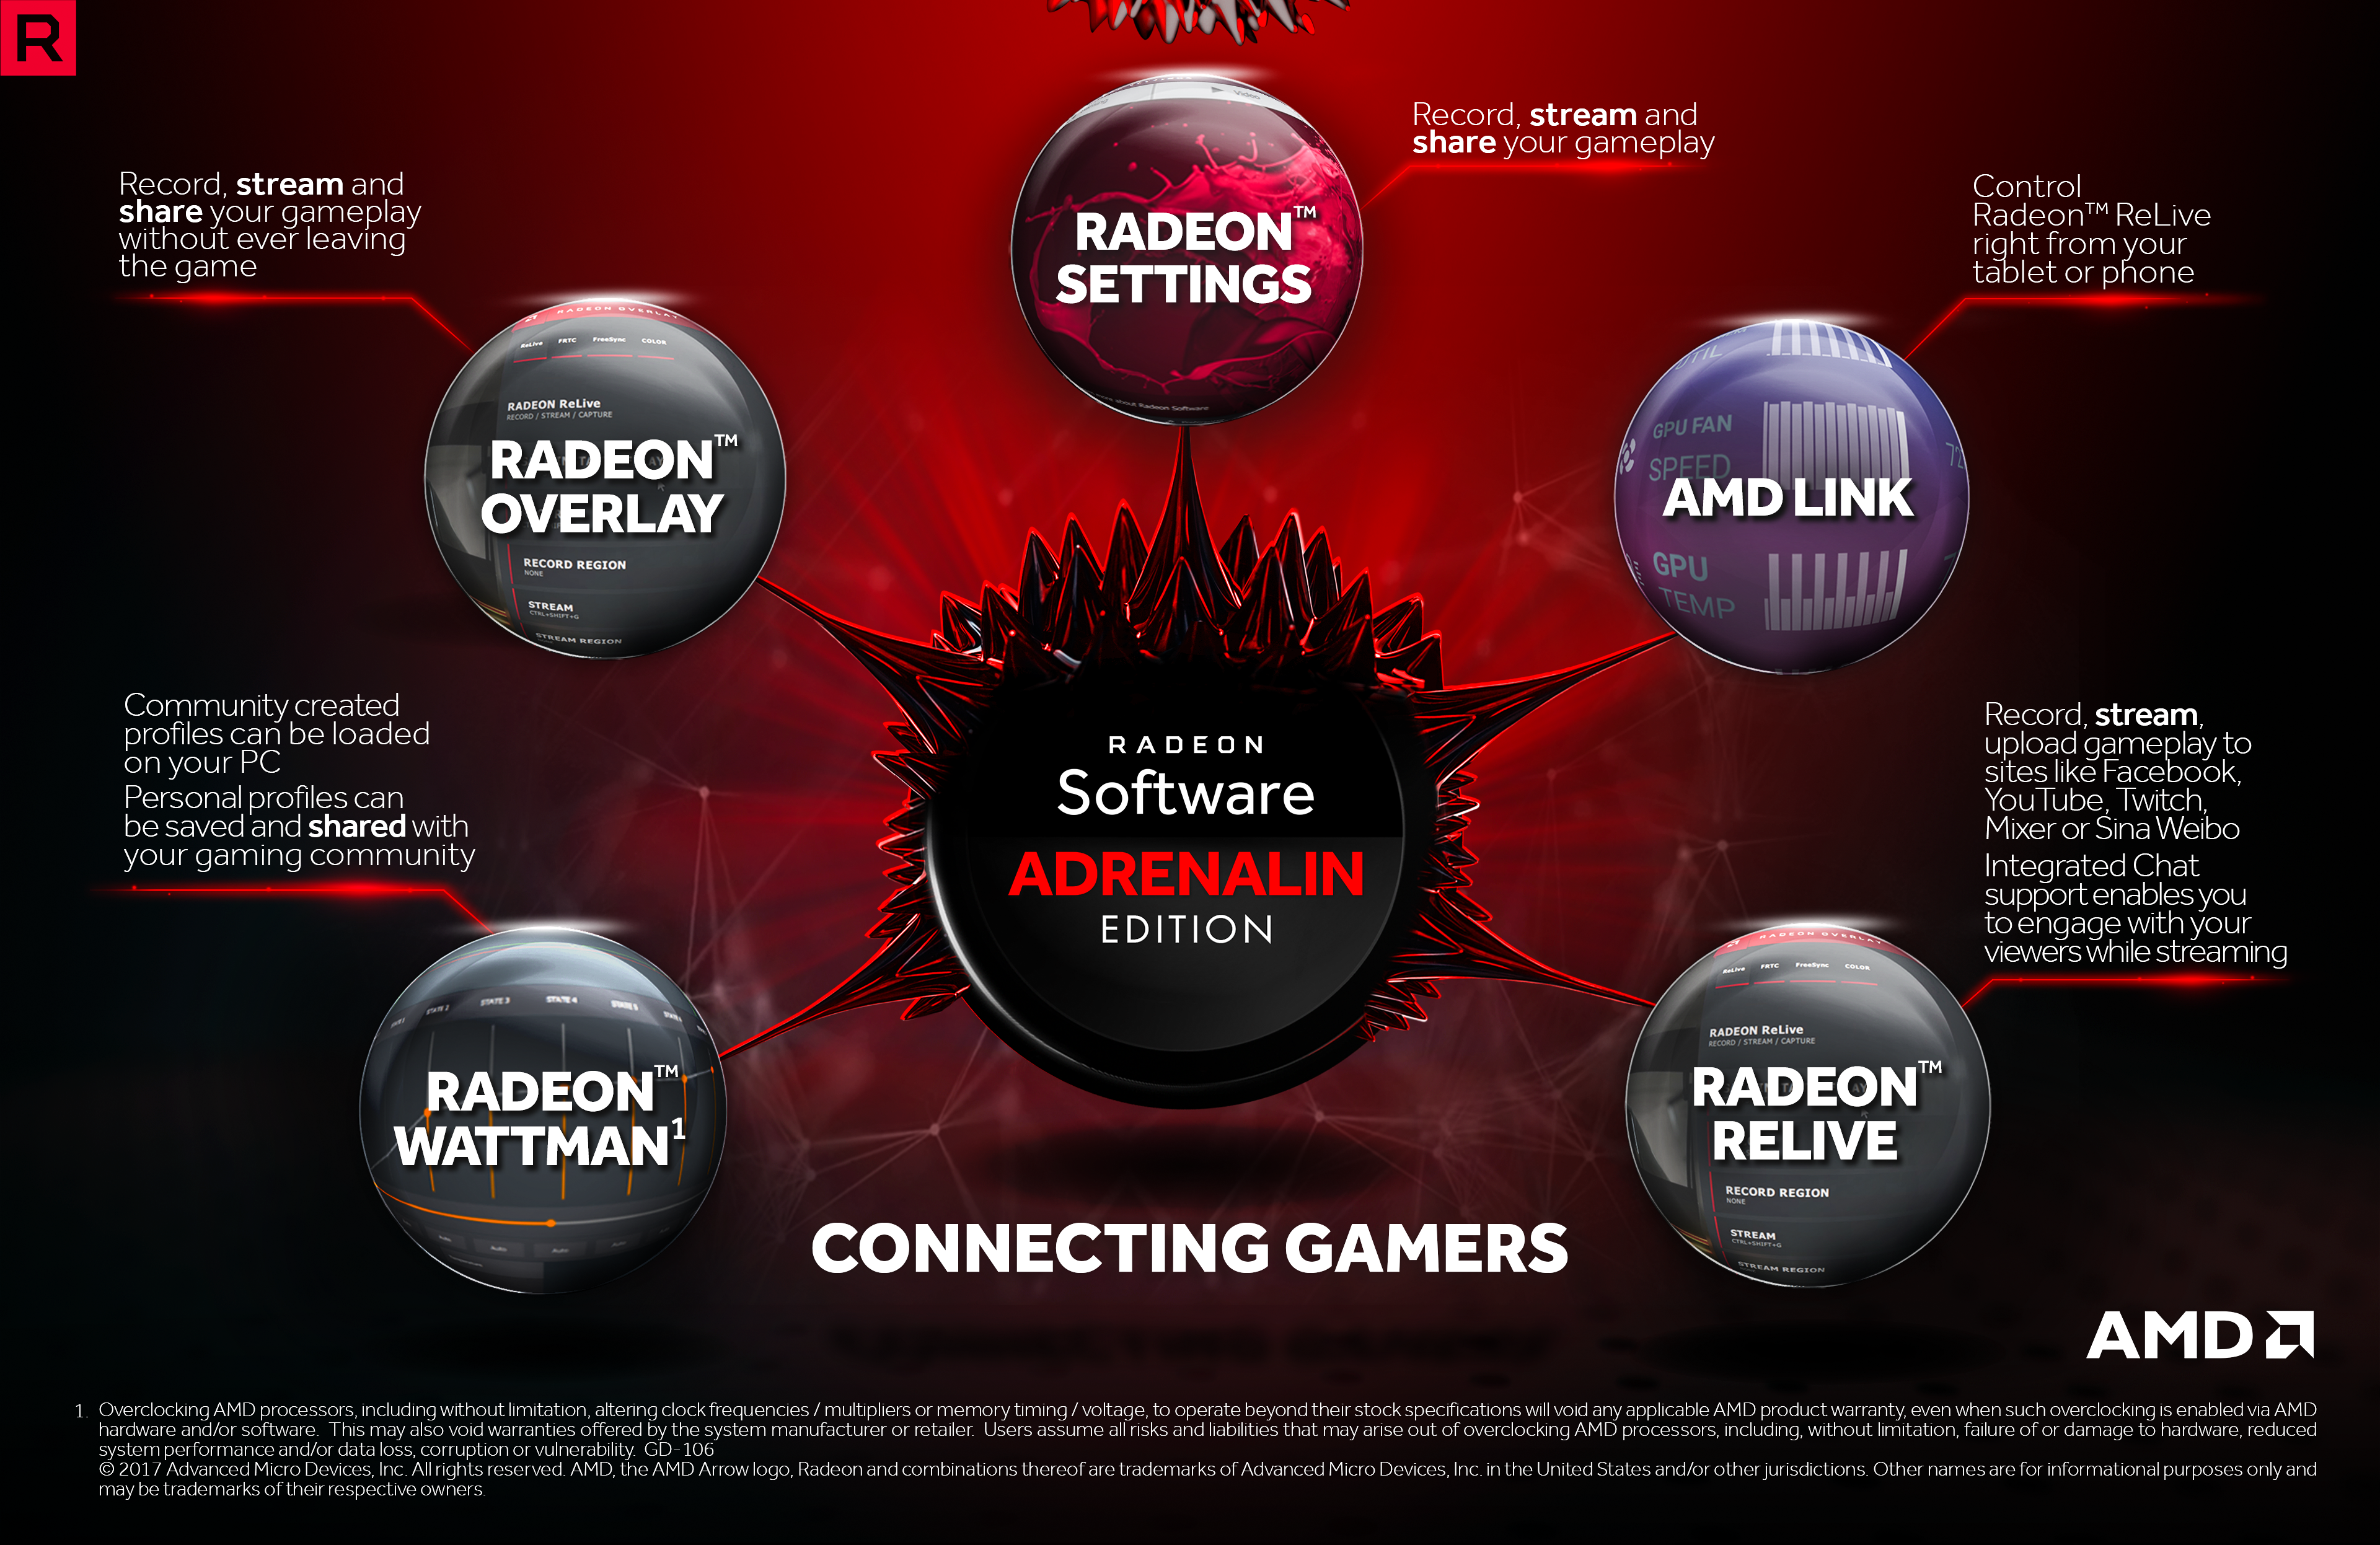 Final Thoughts - AMD Releases Radeon Software Adrenalin